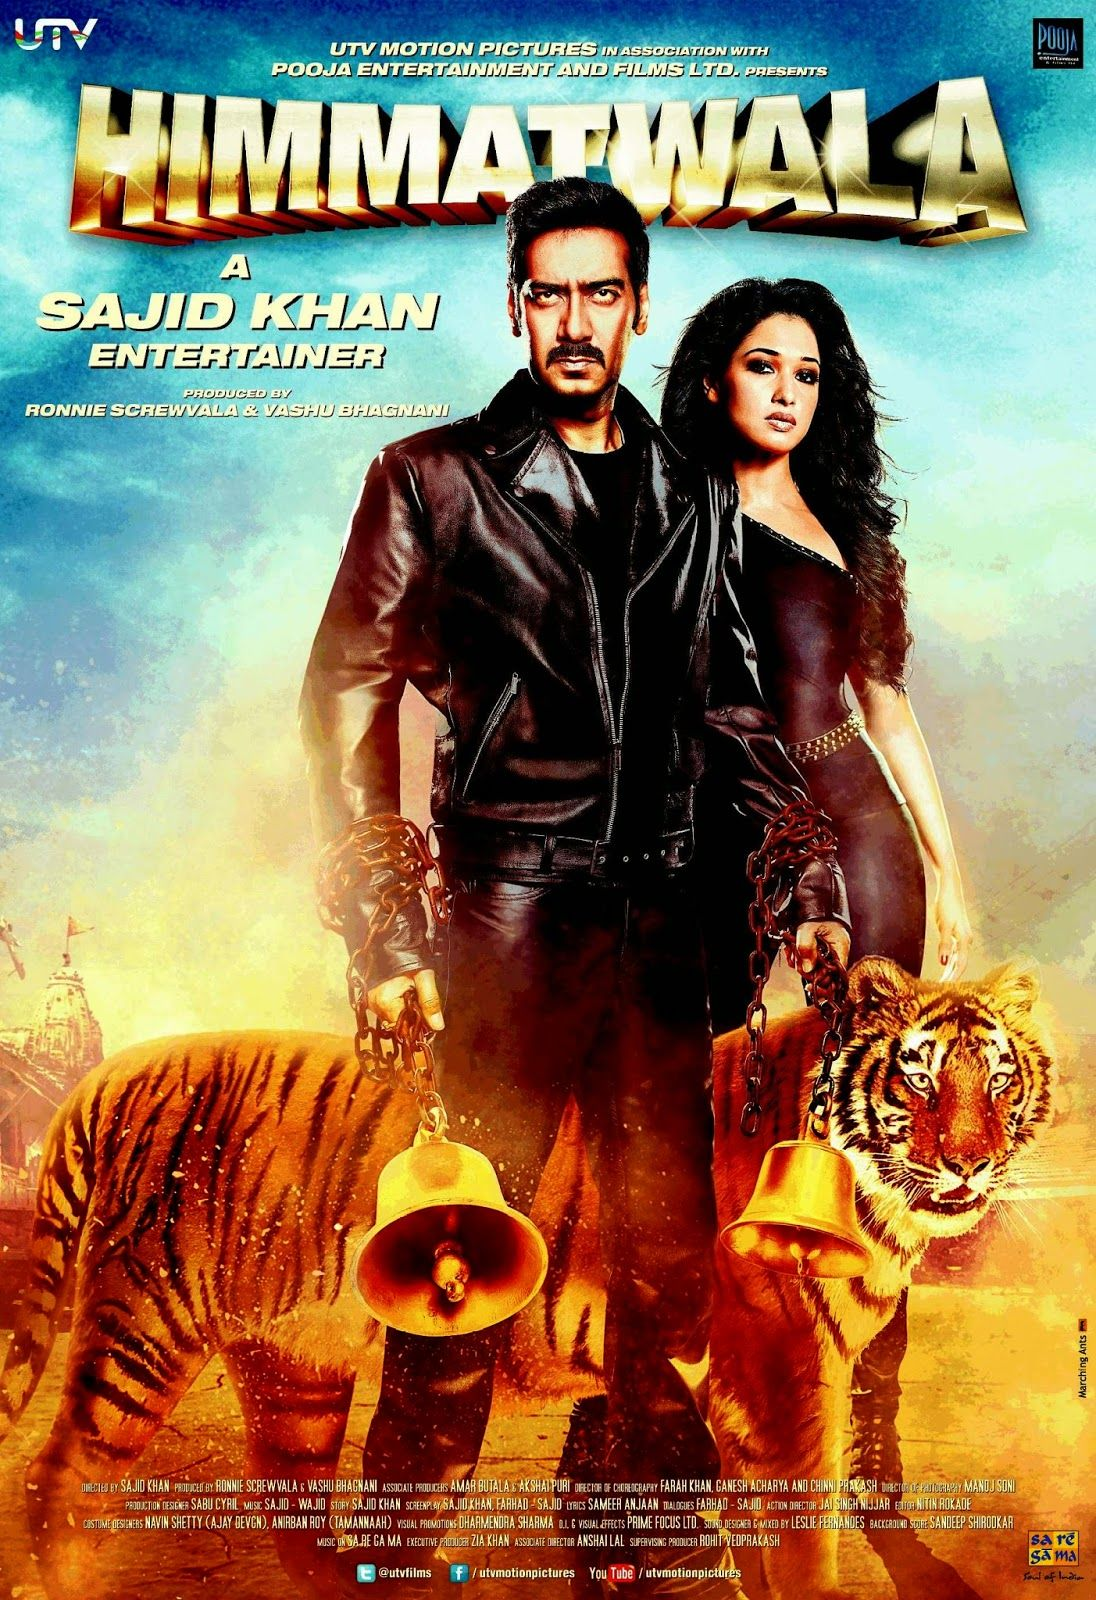 Http Www Songspklover Pw 2014 05 Himmatwala 2013 Mp3 Songs Download Free Html Hindi Movies Full Movies Full Movies Online